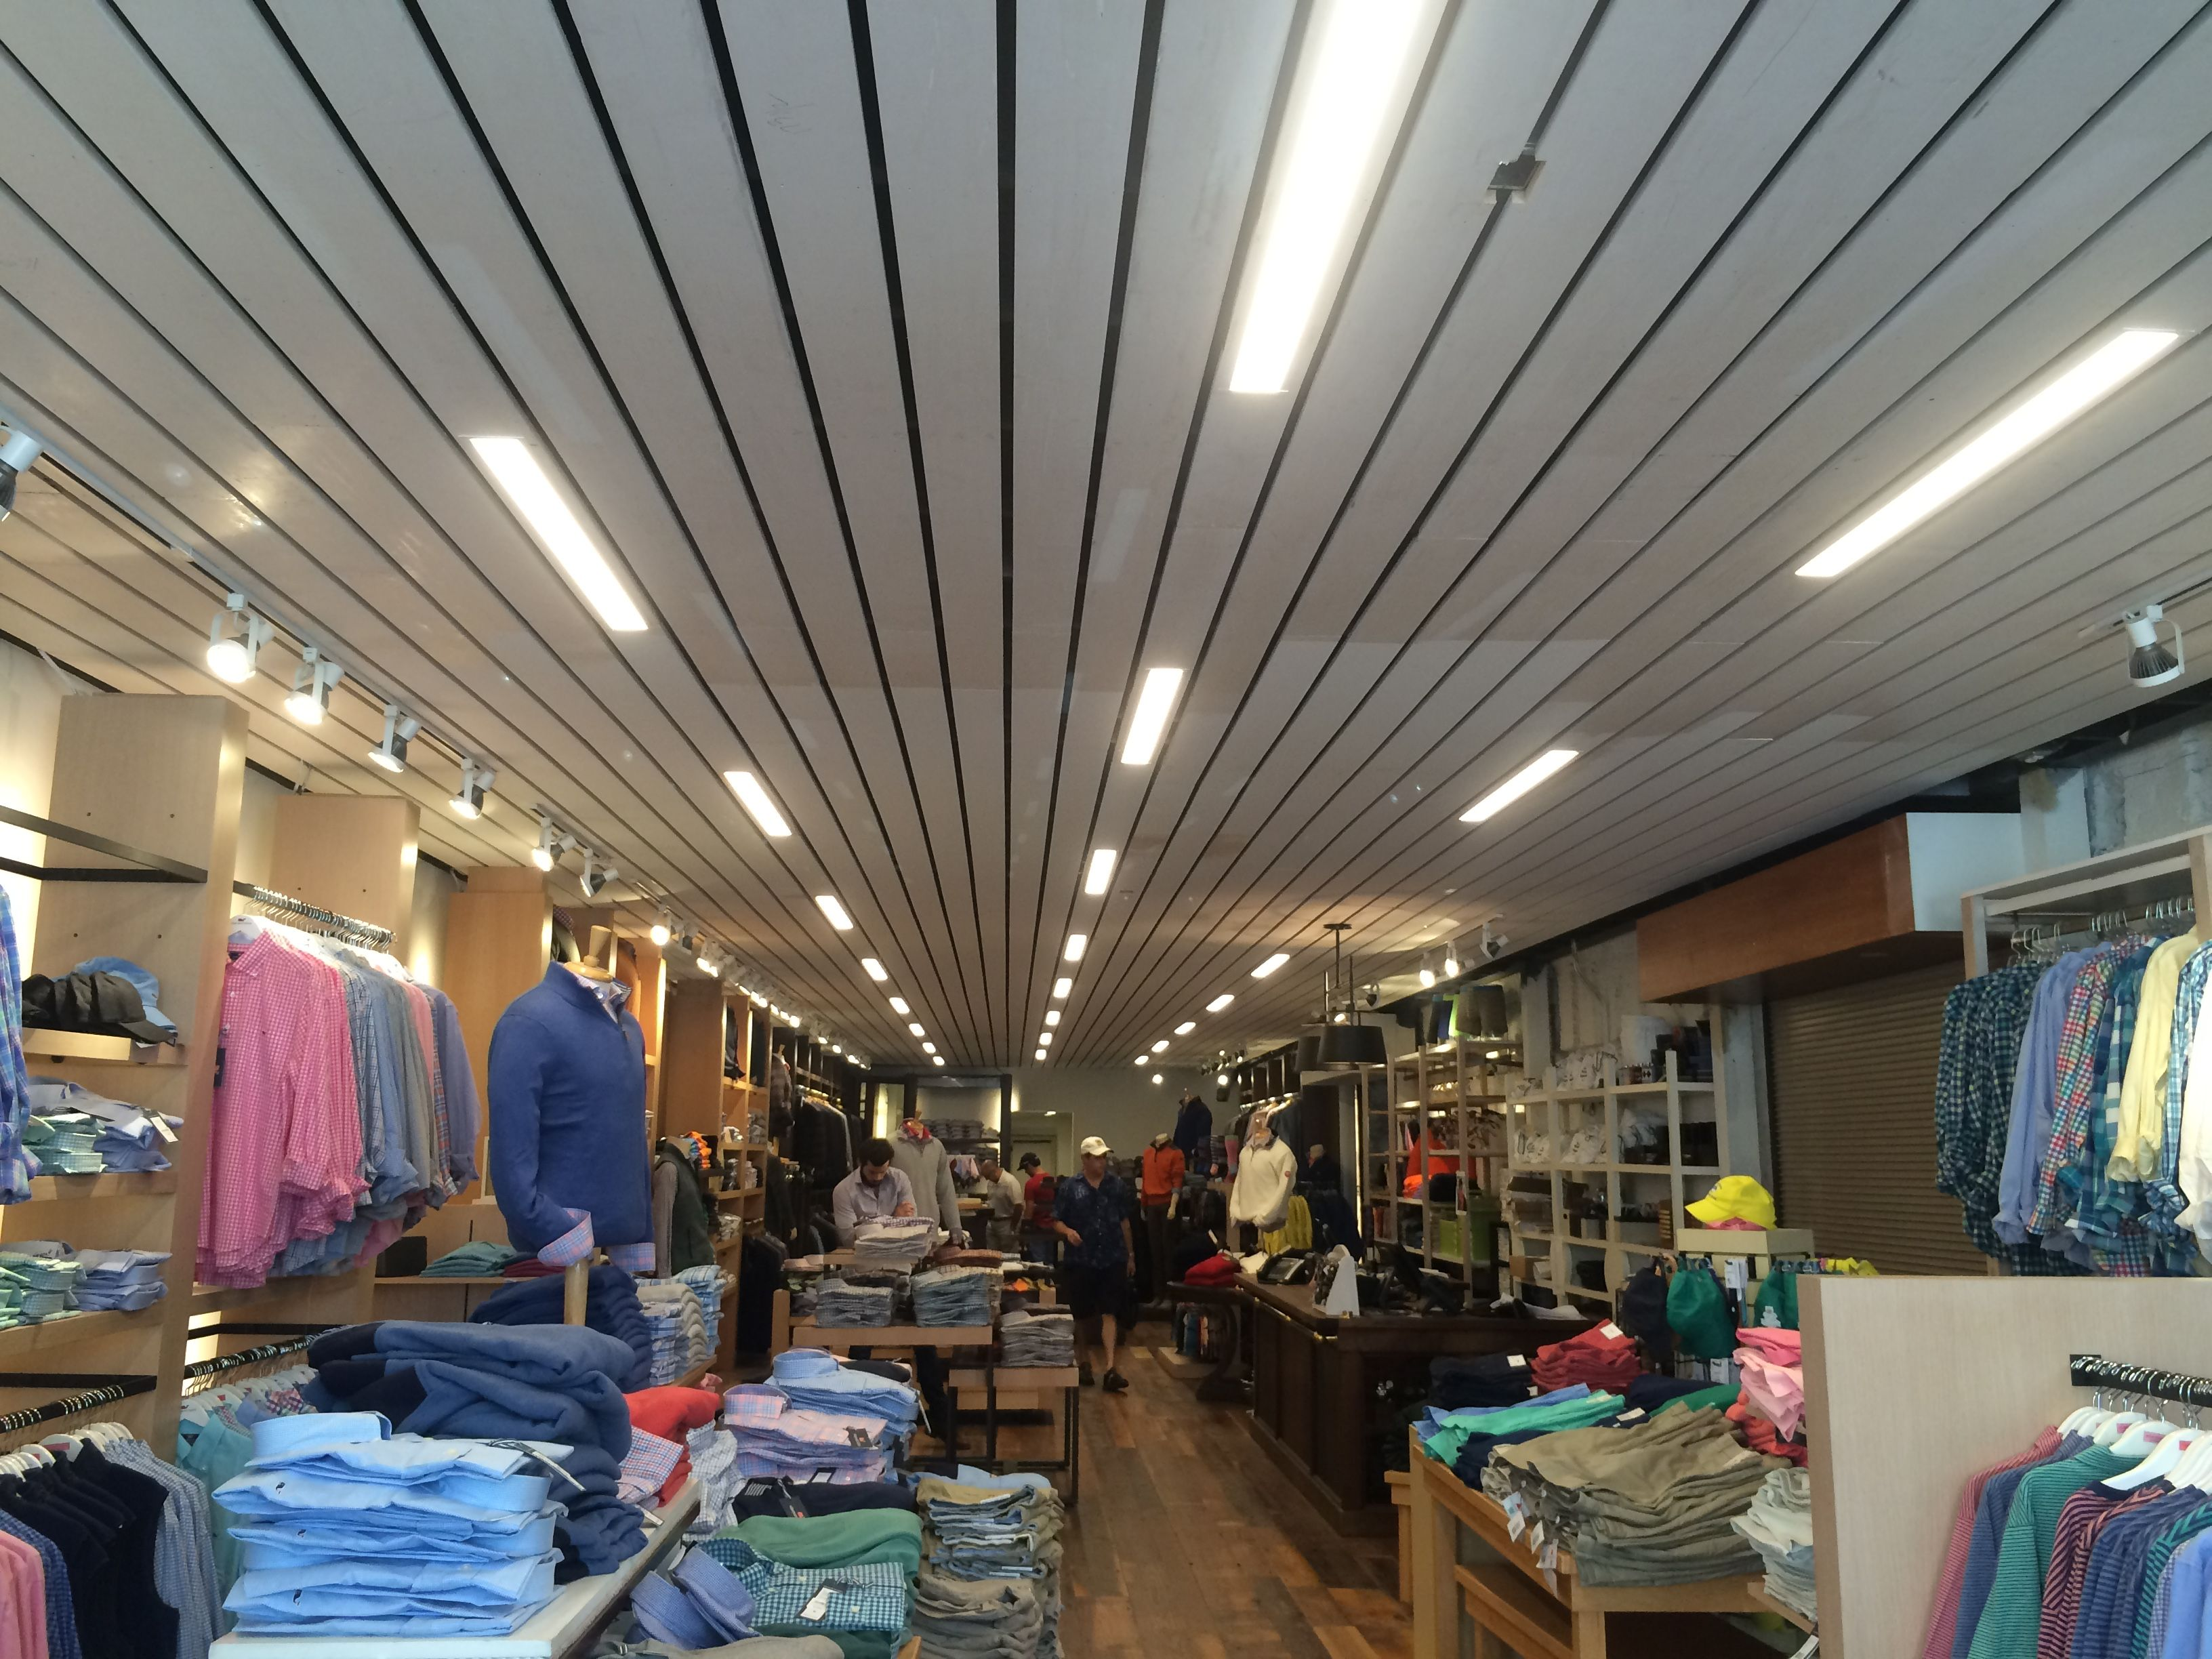 Transworld, Inc. Electrical Contractors LEDs lighting upgrades at Dumas and Sons in downtown Charleston South Carolina